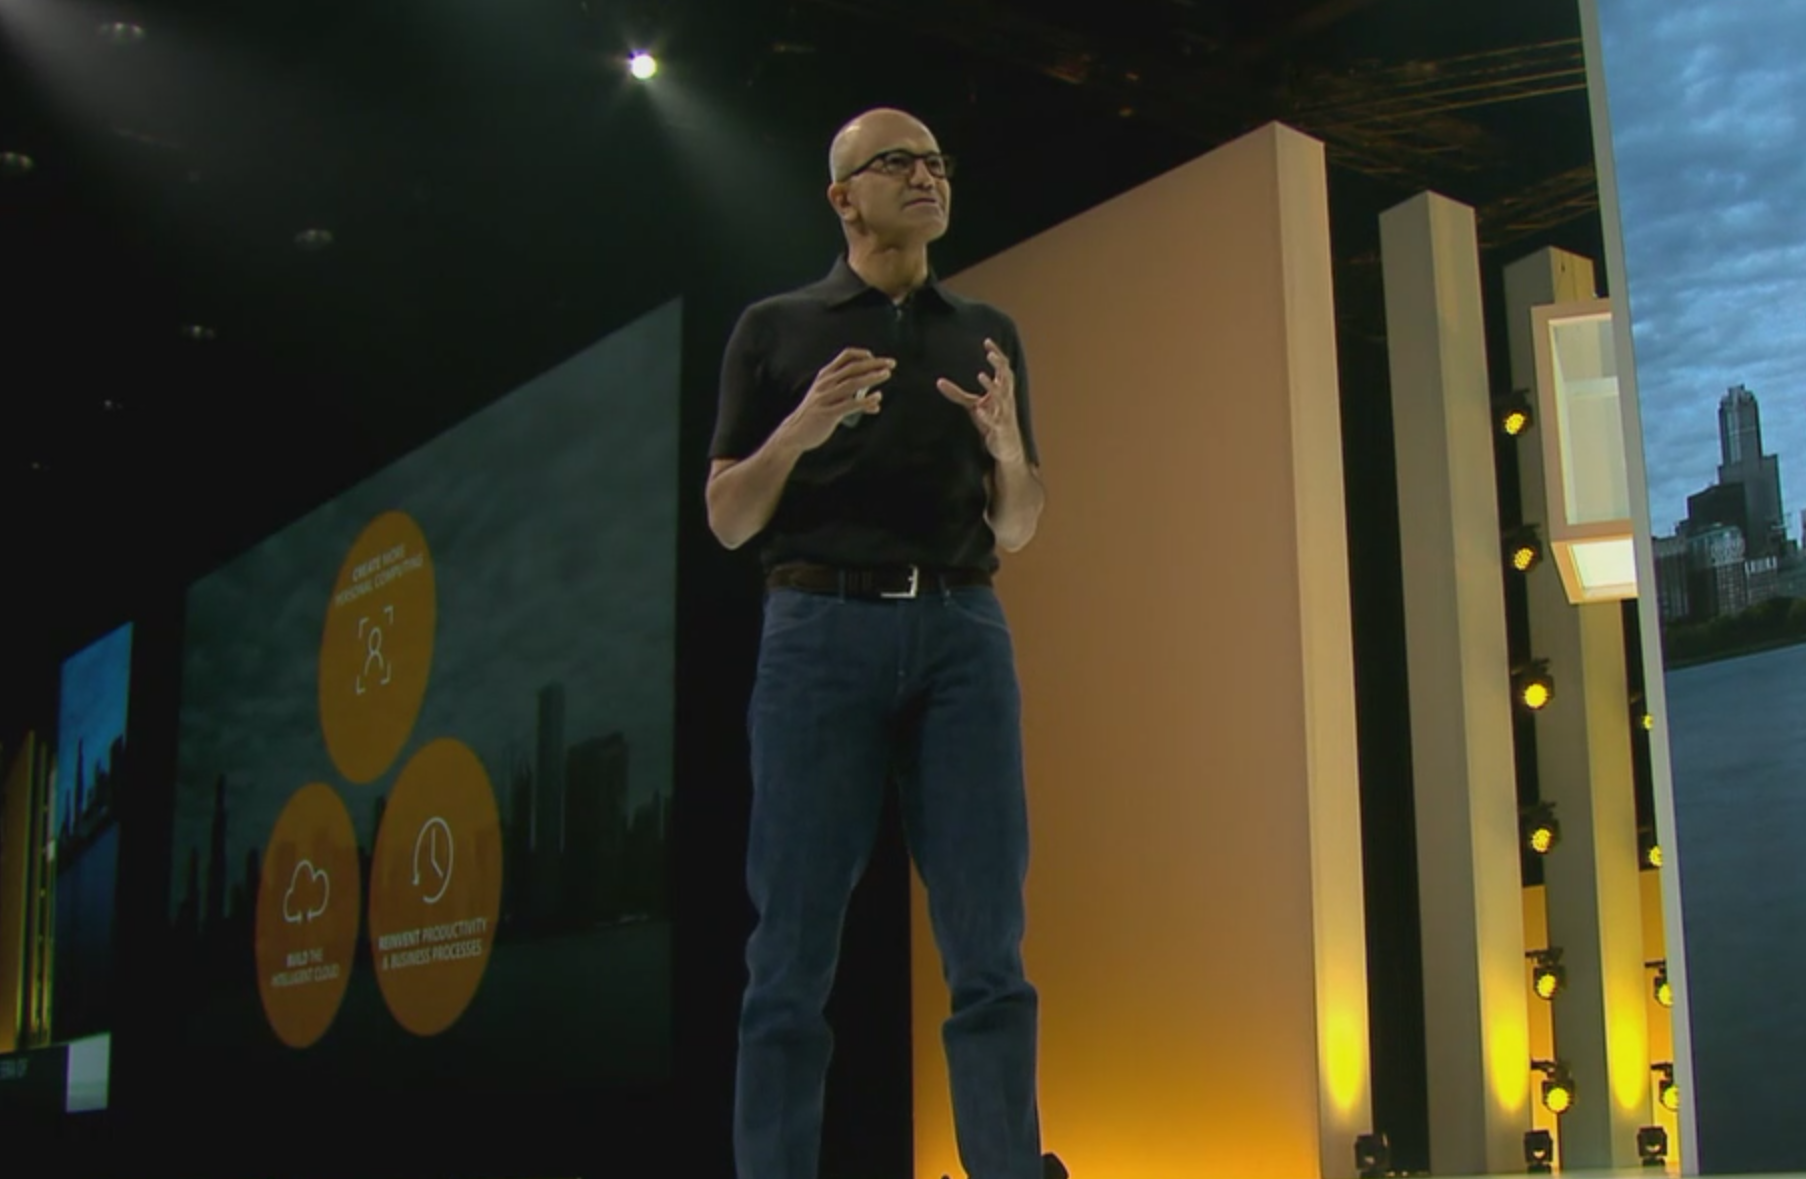 productivity and business processes intelligent cloud and personal computing as segmented categories Microsoft partners with adobe updates office 365, azure, more #msignite by noreen seebacher althoff said microsoft has focused its innovation on three main categories: personal computing, productivity and business processes, and the intelligent cloud platform.